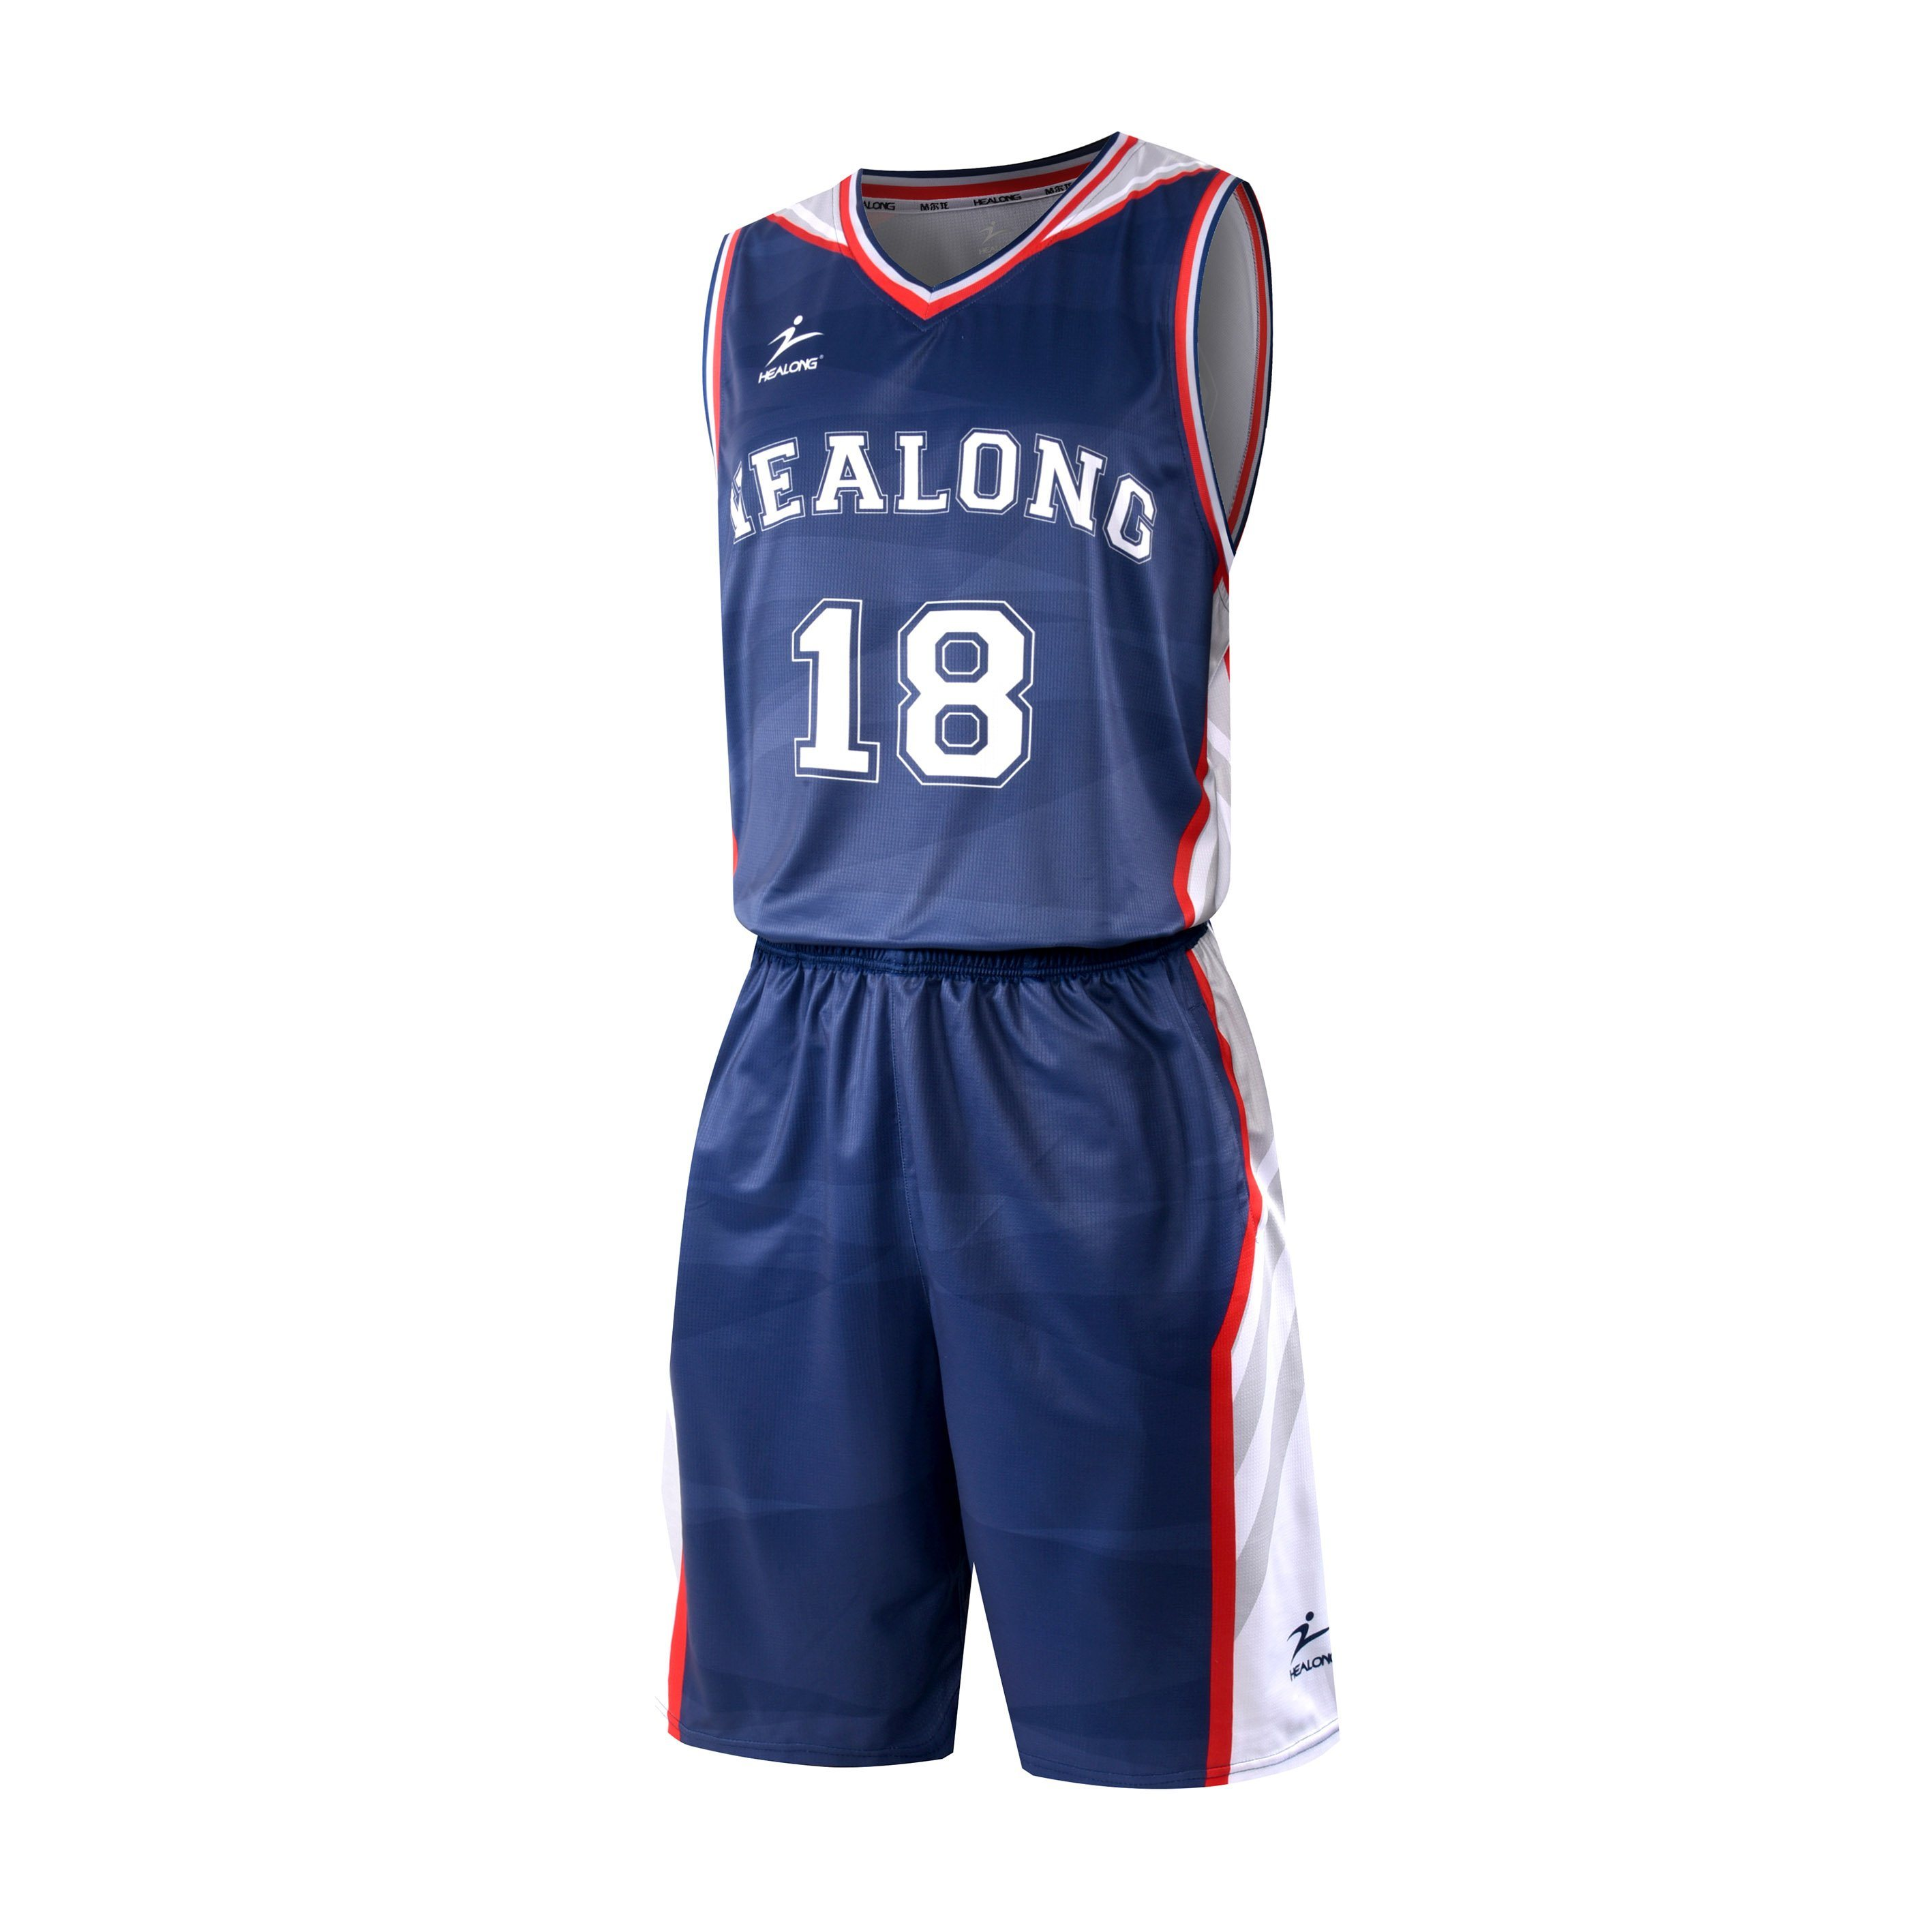 29a95a31c China Latest Basketball Jersey Design Polyester Wholesale Custom Cheap Basketball  Uniform Set - China Custom Basketball Uniform